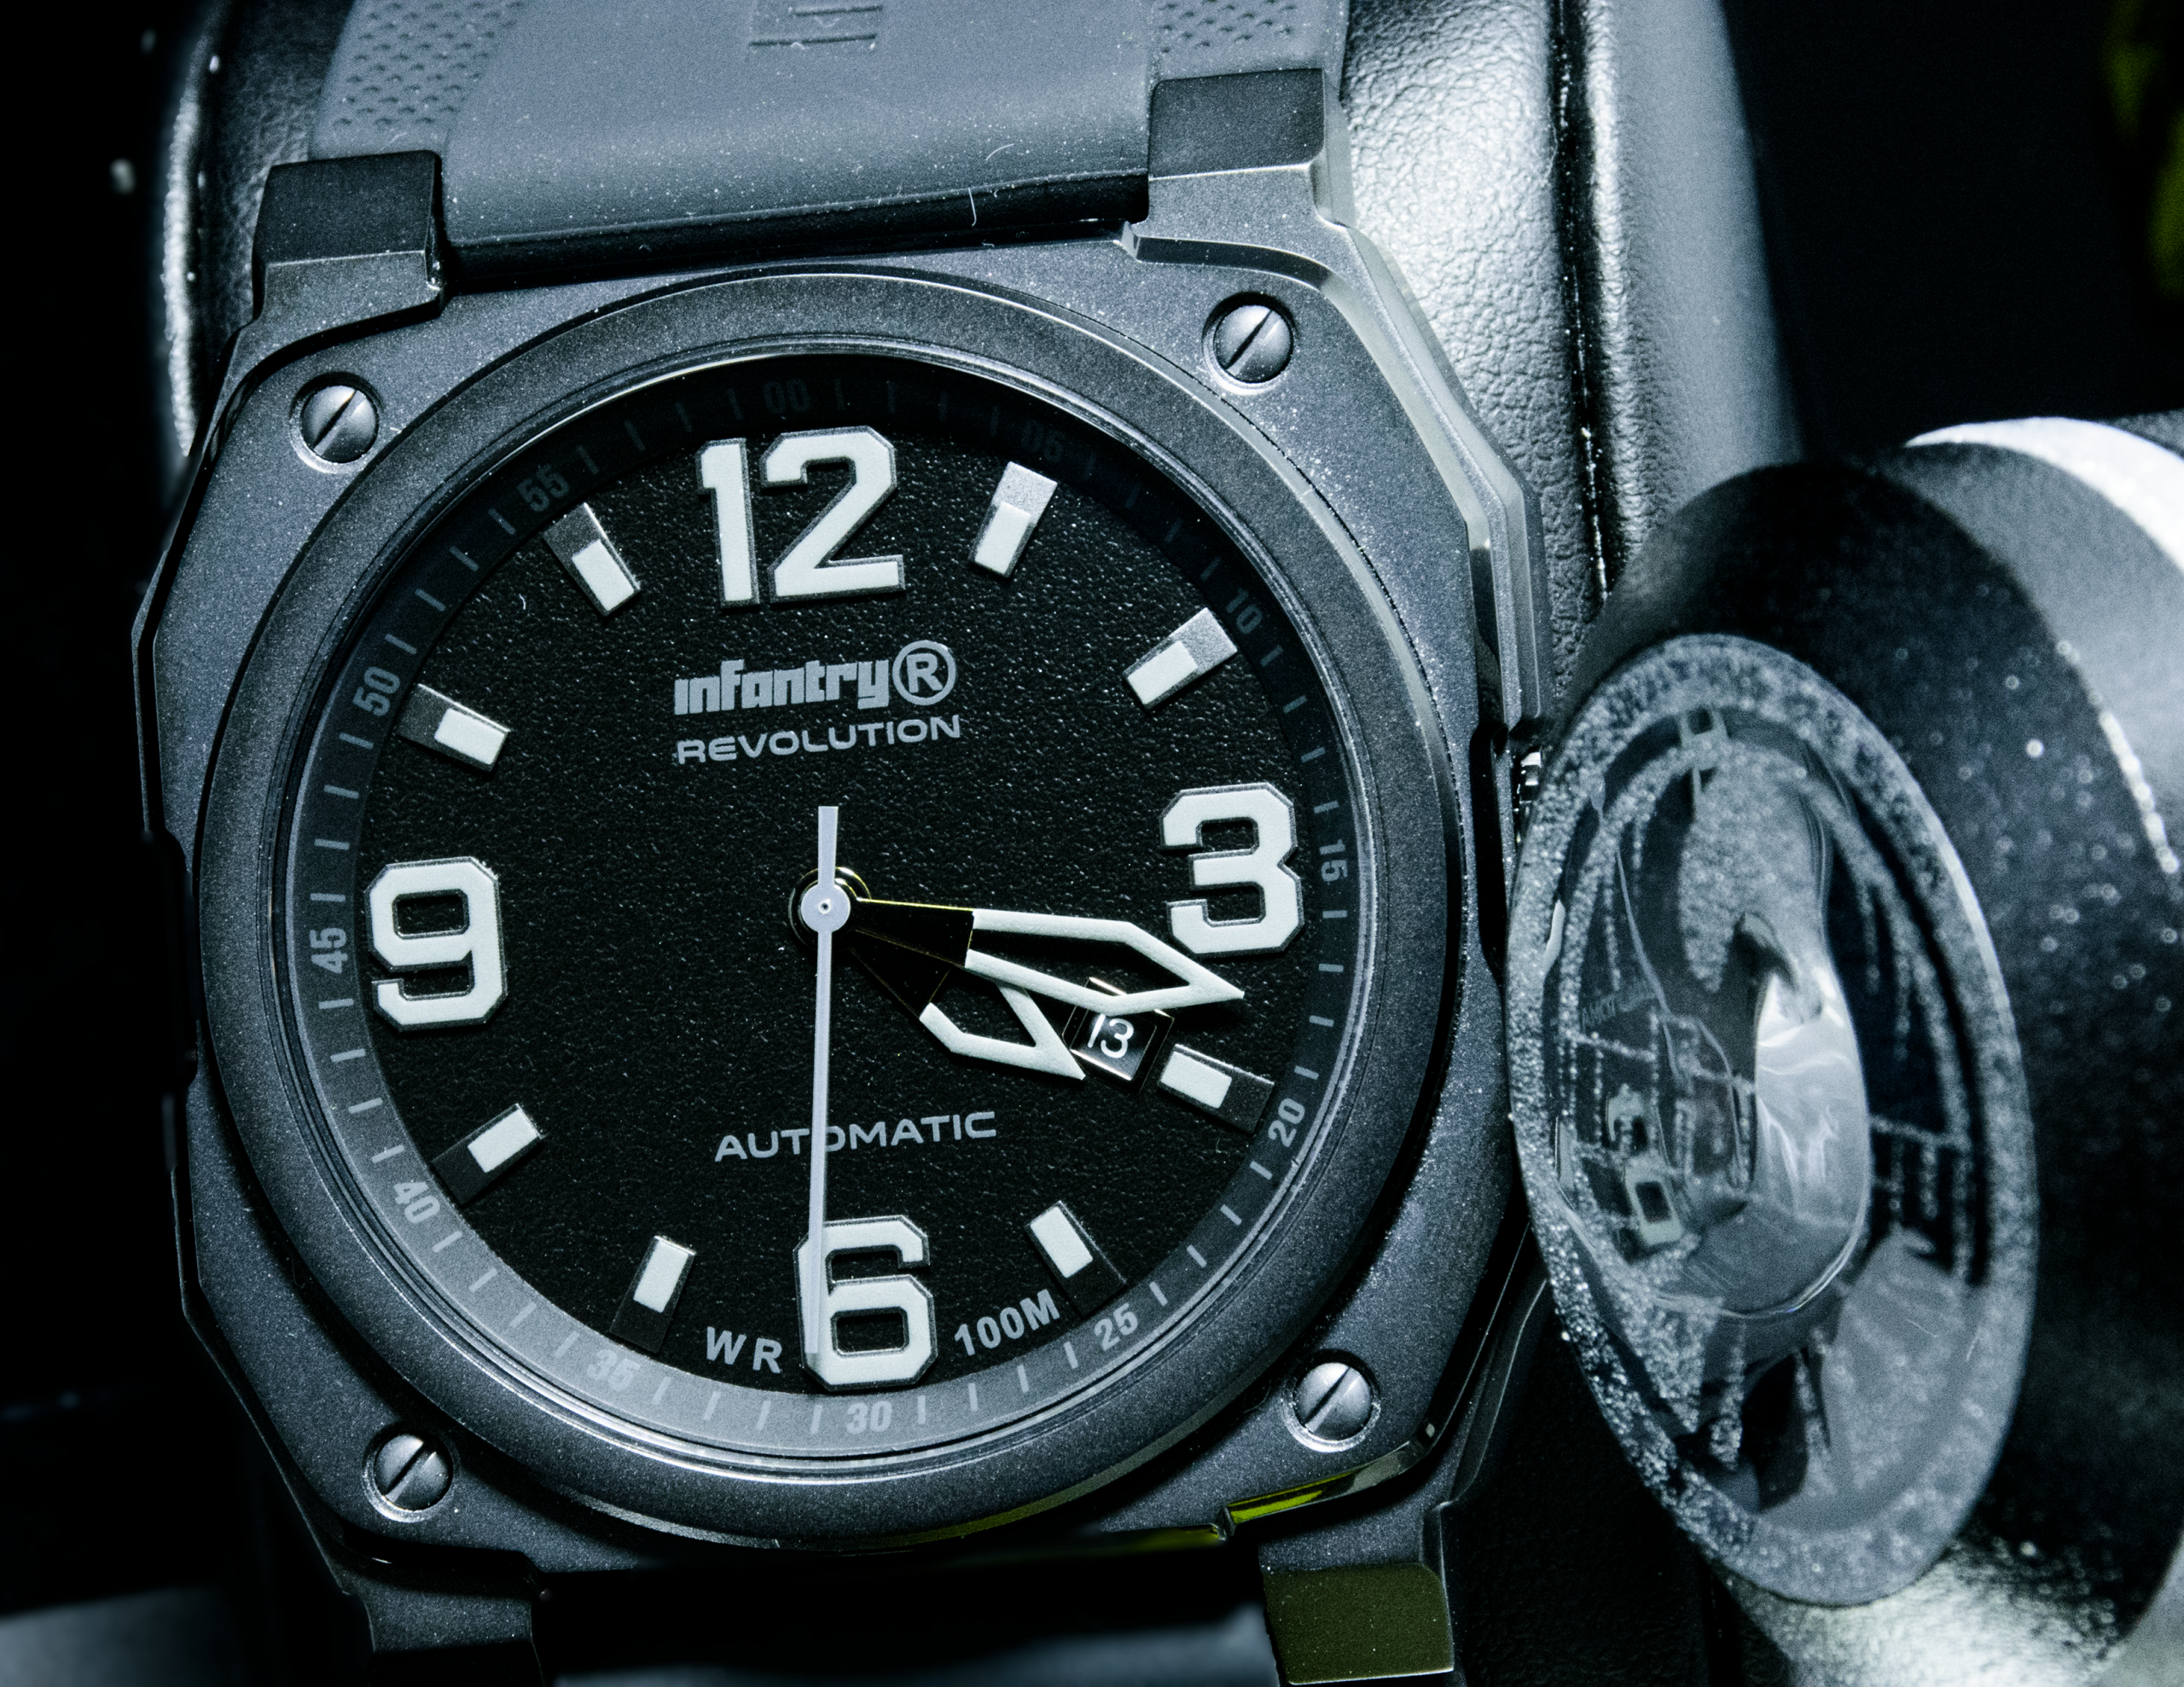 Infantry Revolution Auto-pilot Series / Triple Black